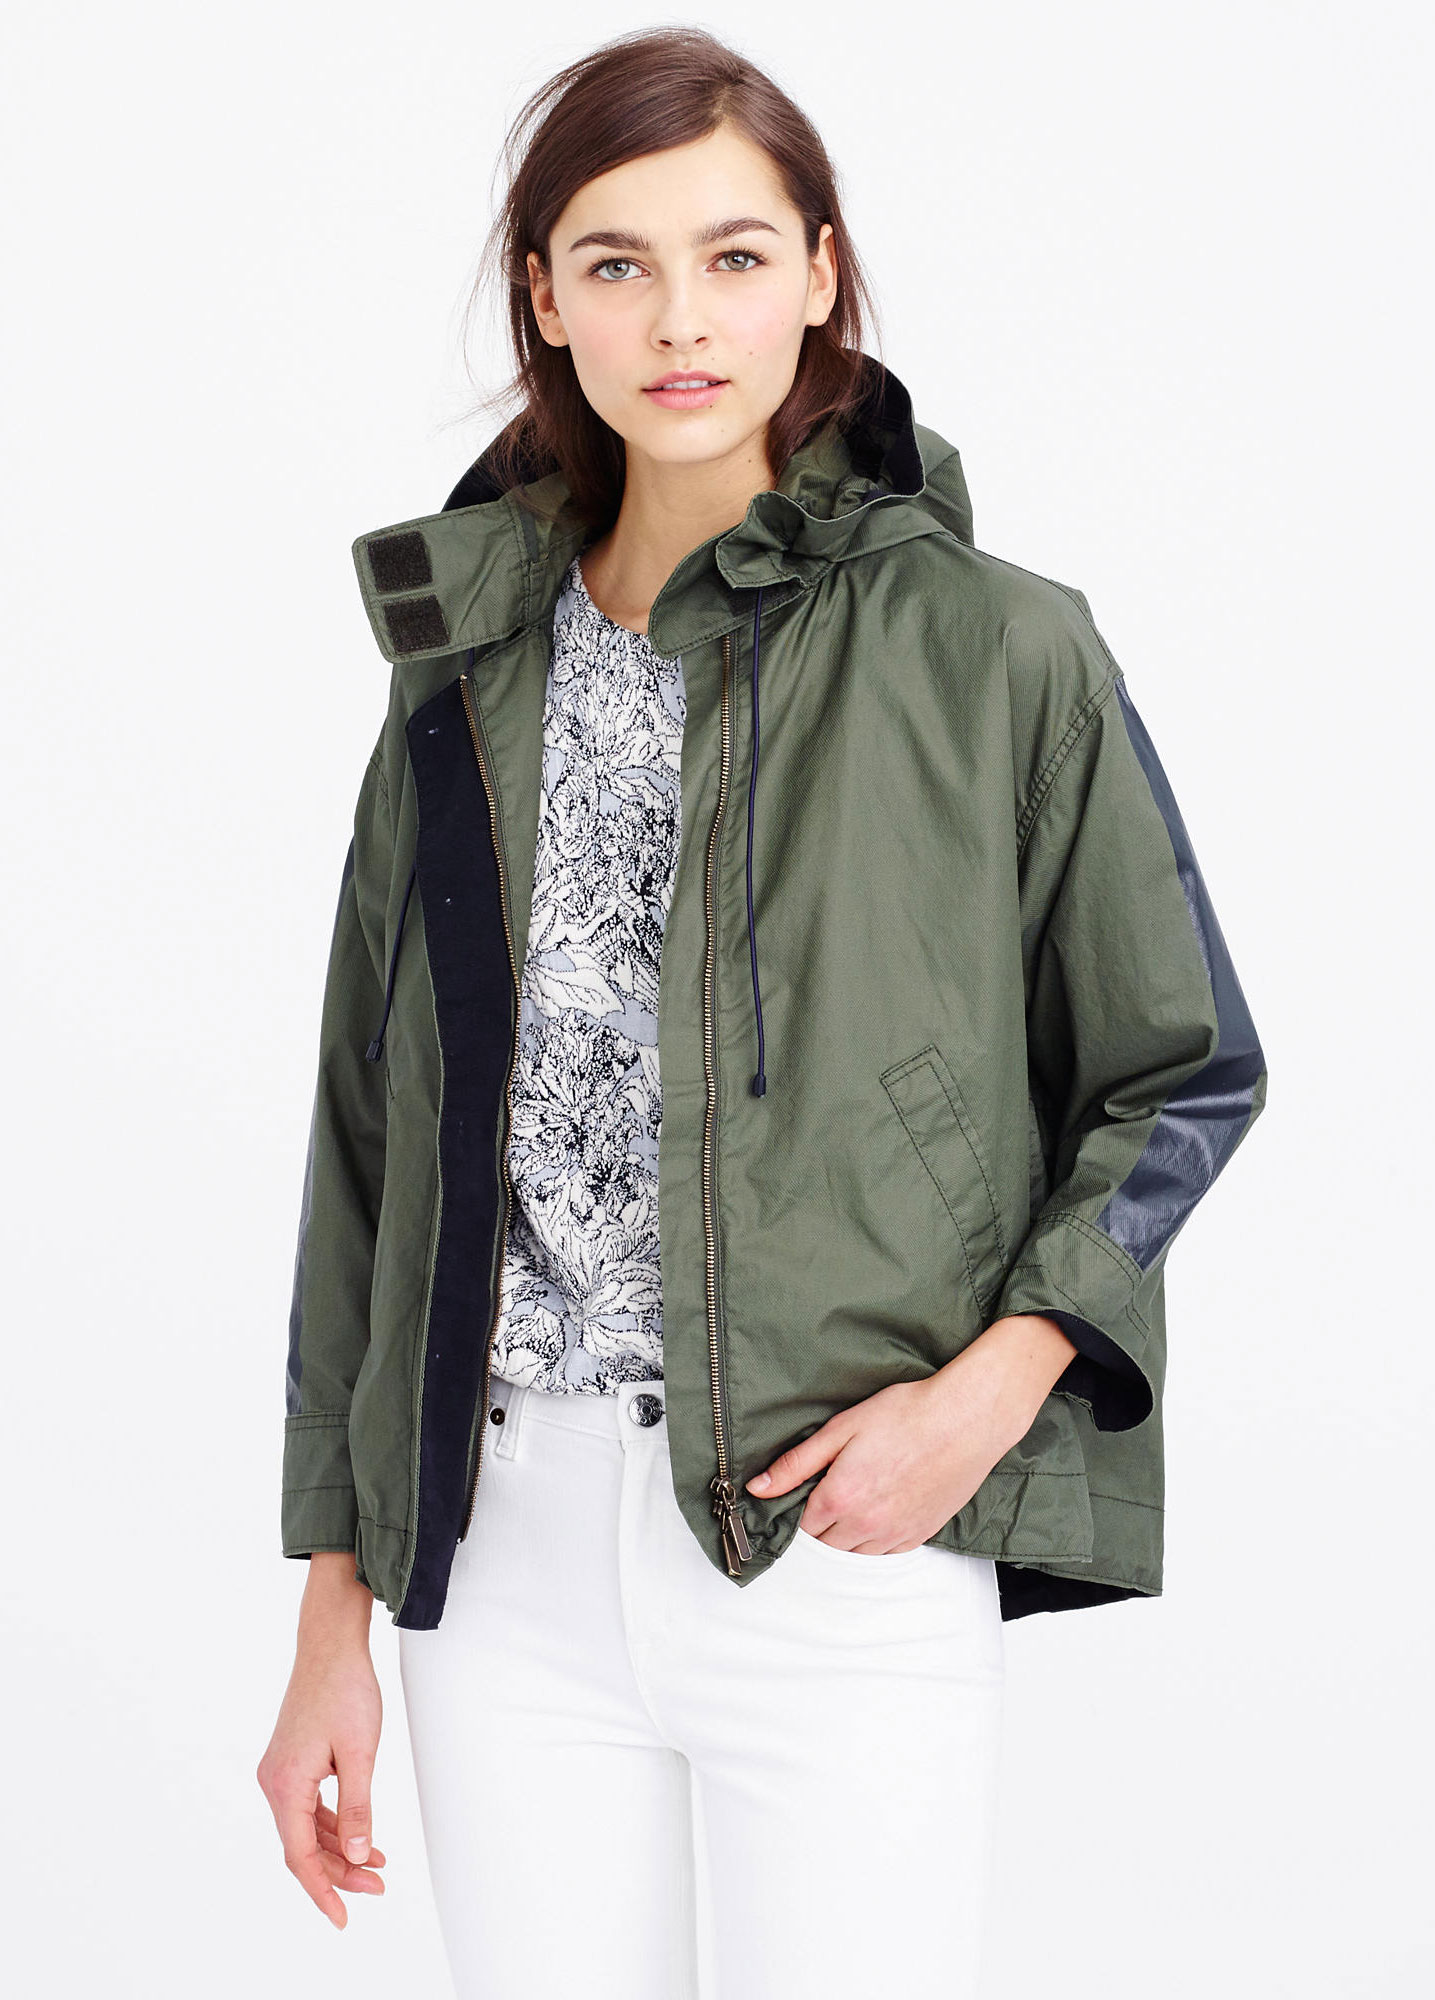 You searched for: cute rain jacket! Etsy is the home to thousands of handmade, vintage, and one-of-a-kind products and gifts related to your search. No matter what you're looking for or where you are in the world, our global marketplace of sellers can help you find unique and affordable options. Let's get started!